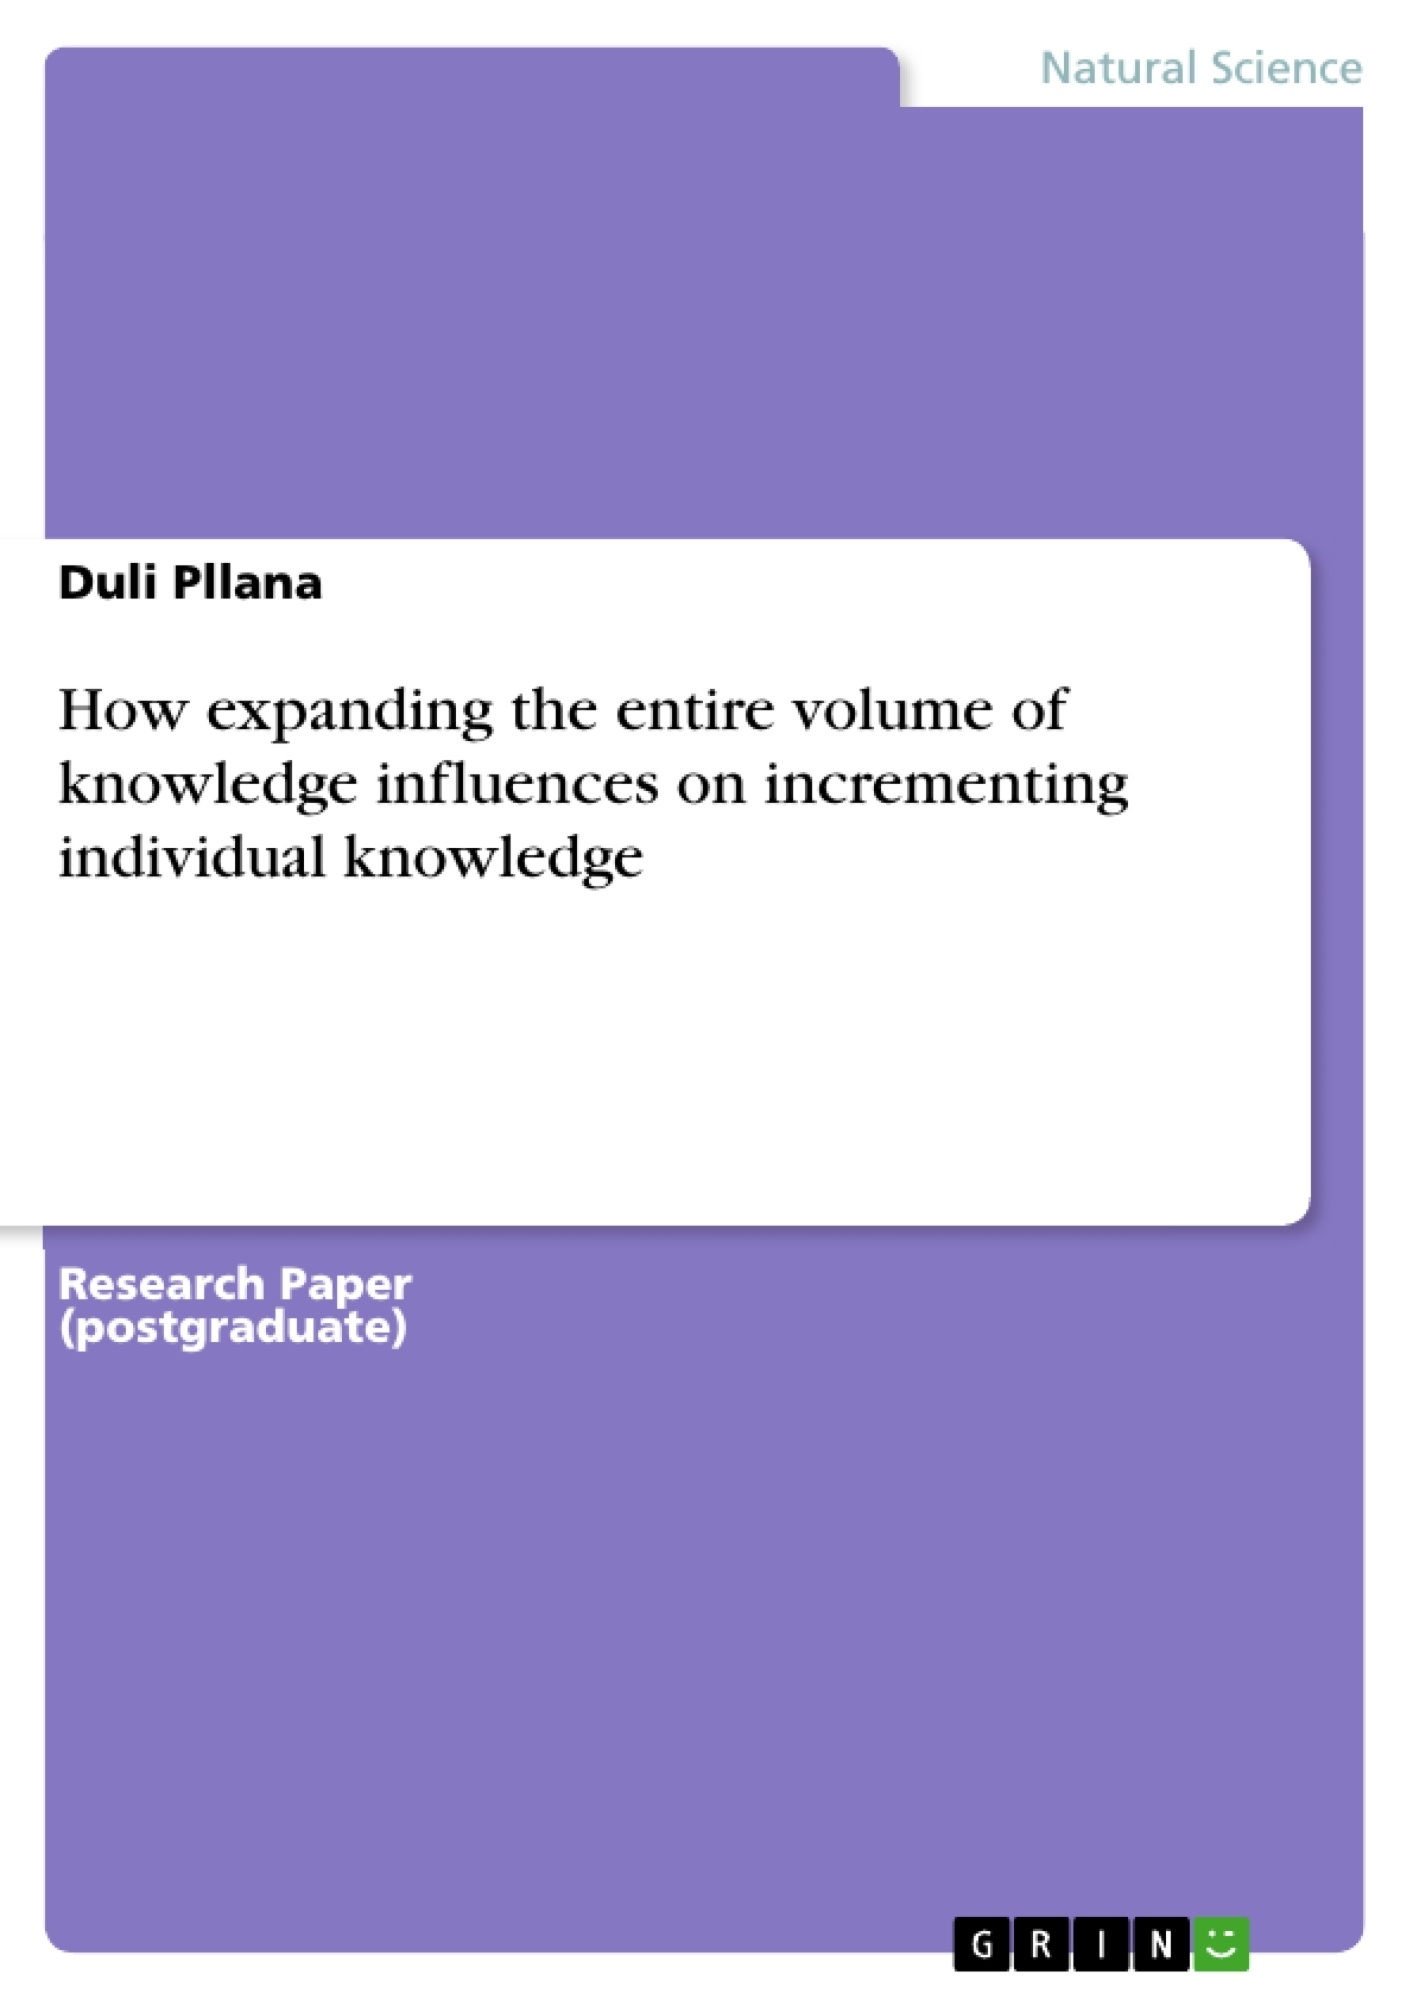 Title: How expanding the entire volume of knowledge influences on incrementing individual knowledge